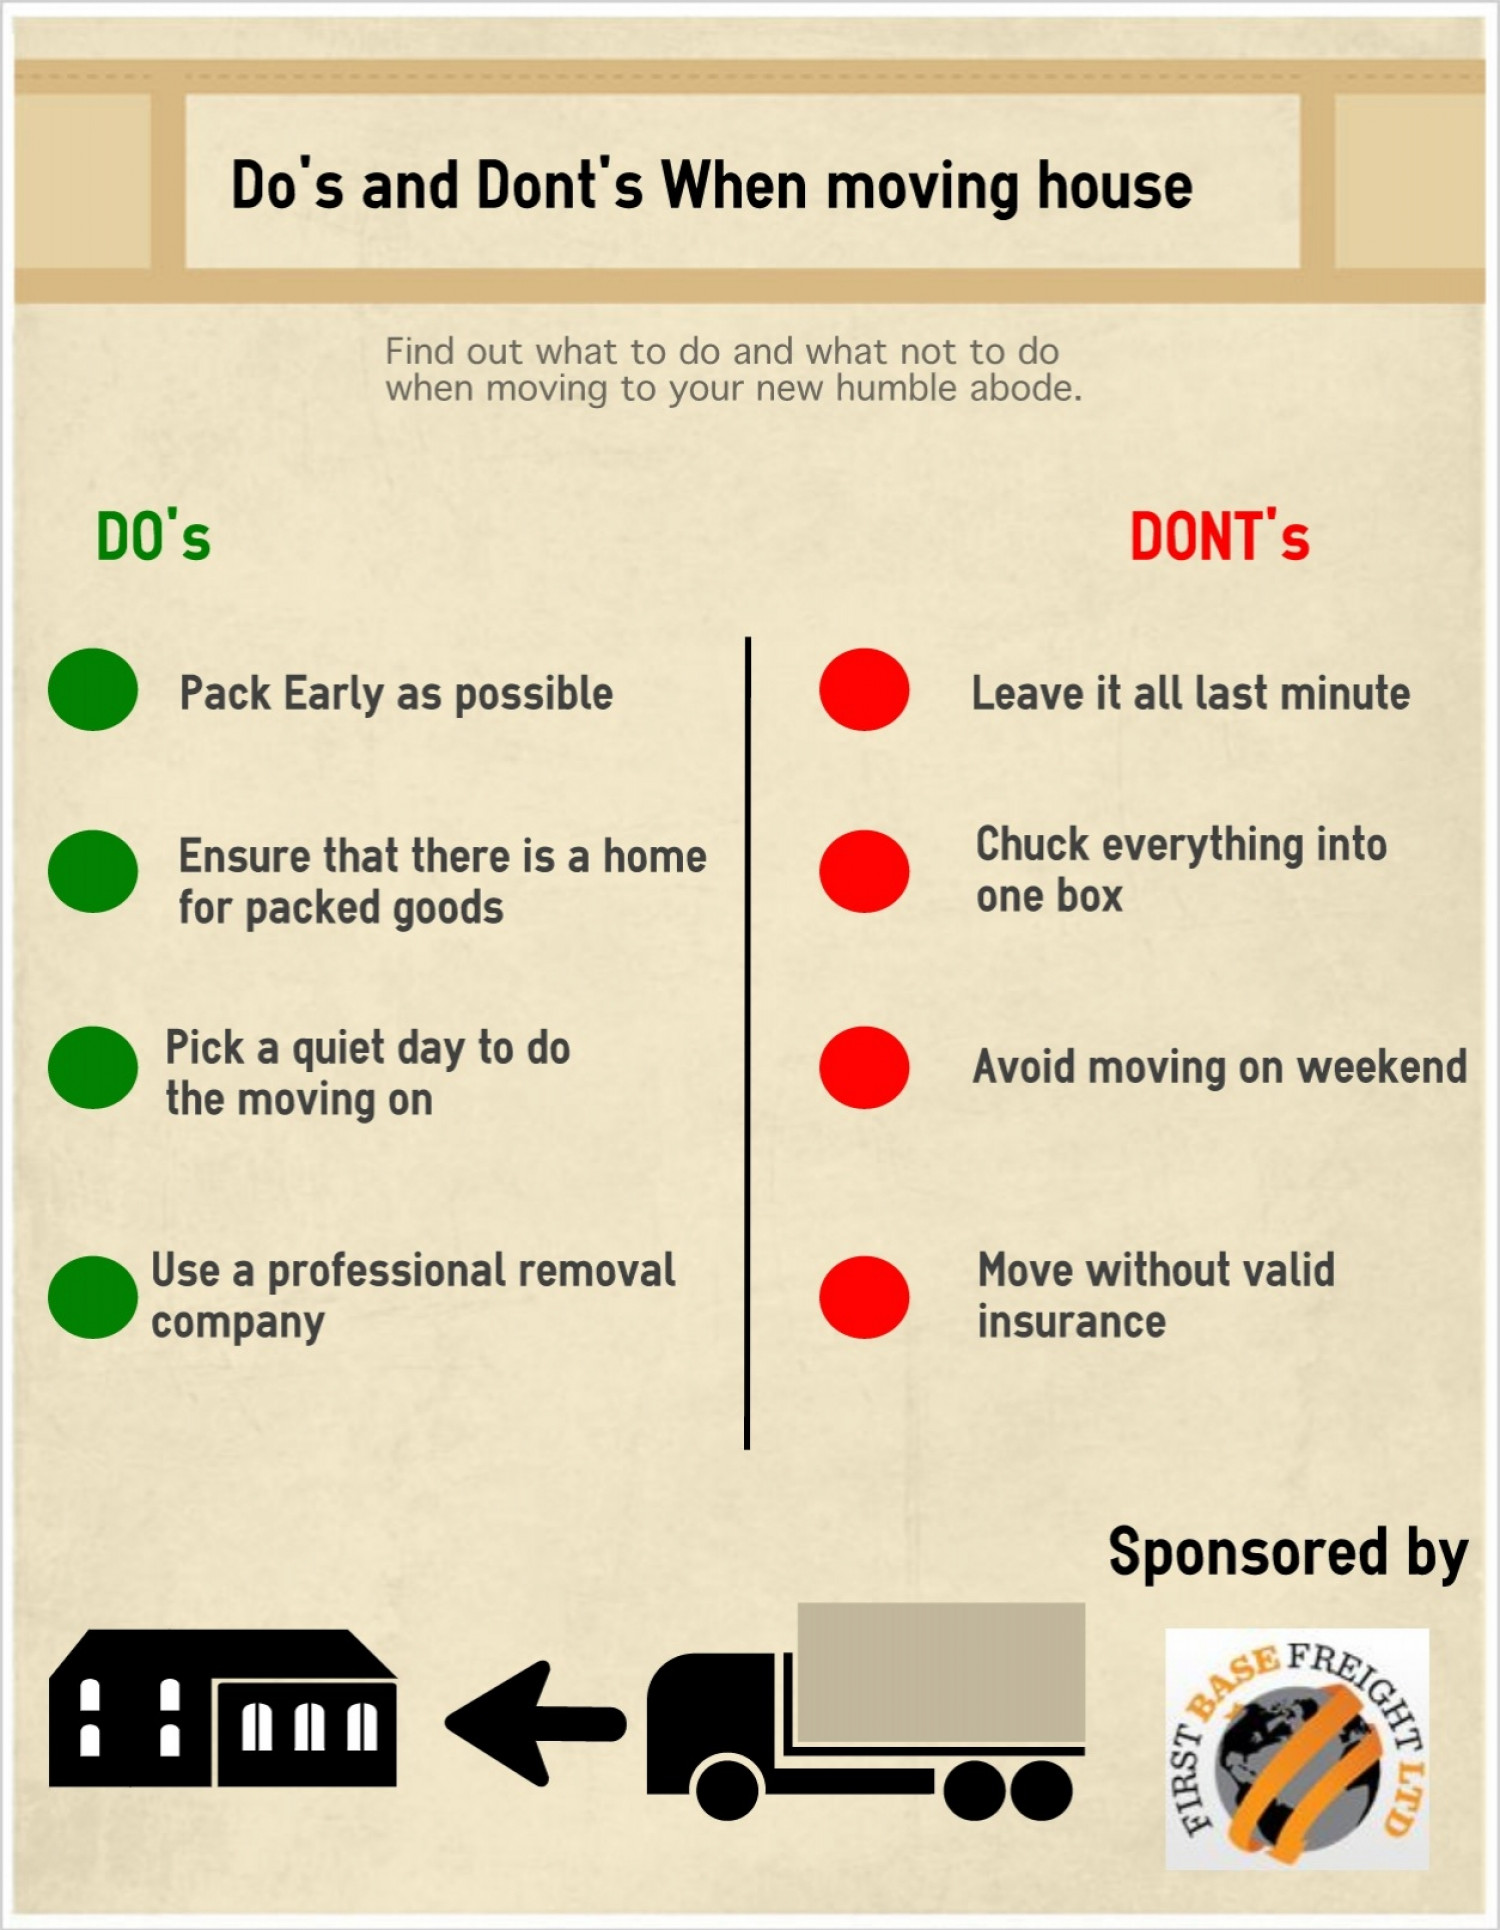 DO's and DONT's when moving house Infographic